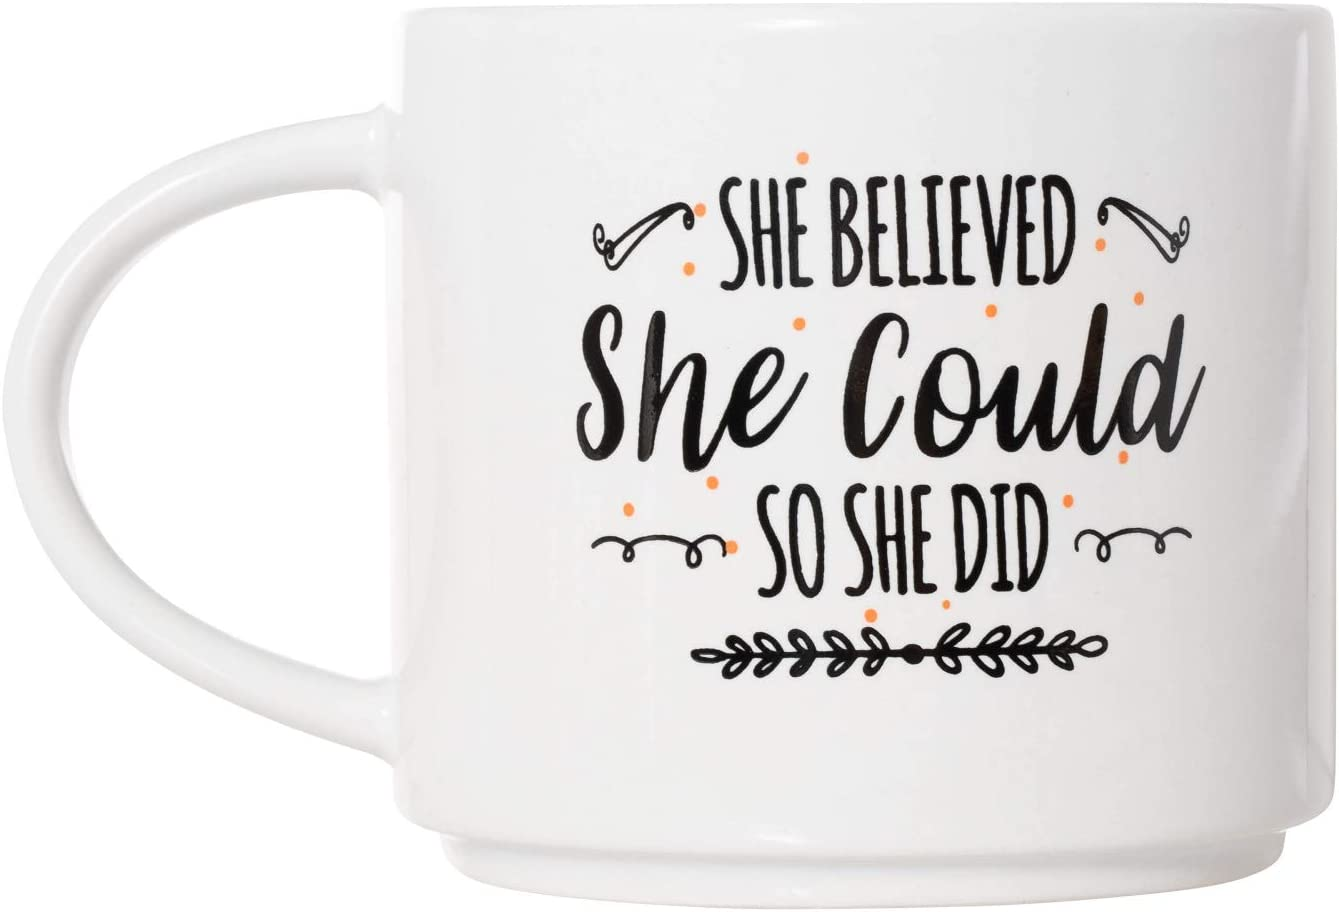 She Believed She Could So She Did Mug - Deluxe Double-Sided Coffee Tea Mug (16 oz style)